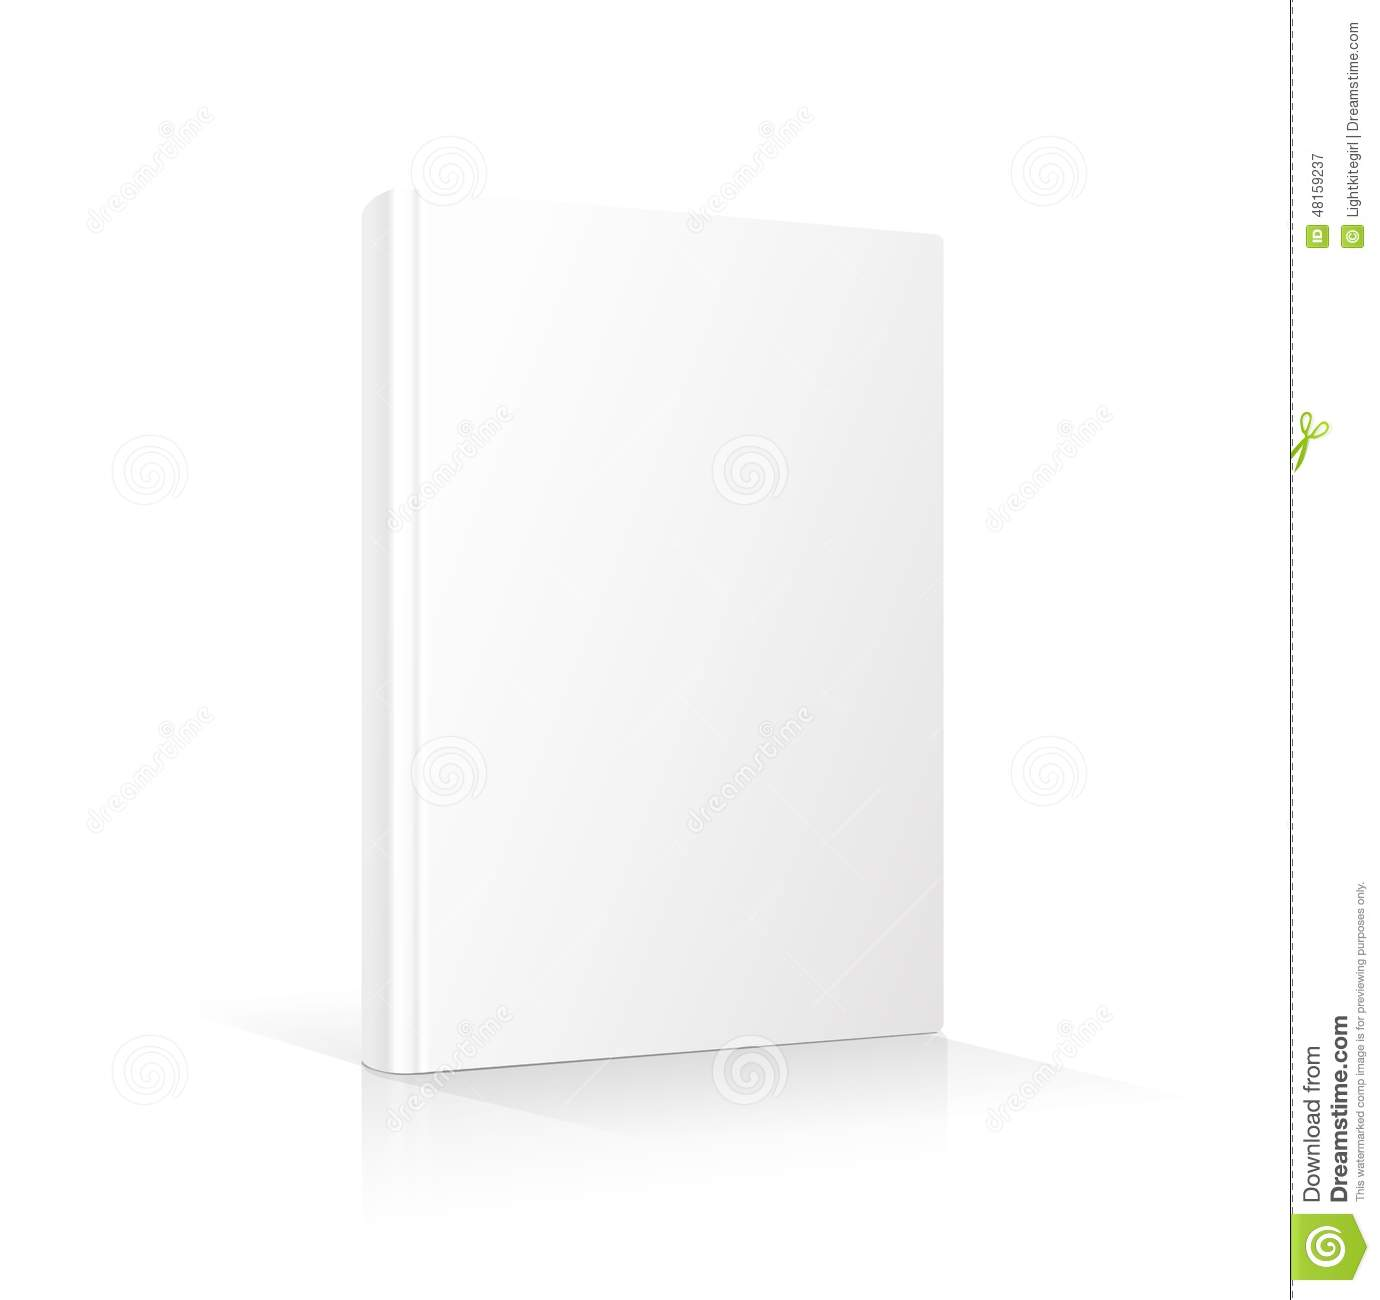 Blank Book Cover Vector Illustration Free : Blank vertical book cover template standing on stock